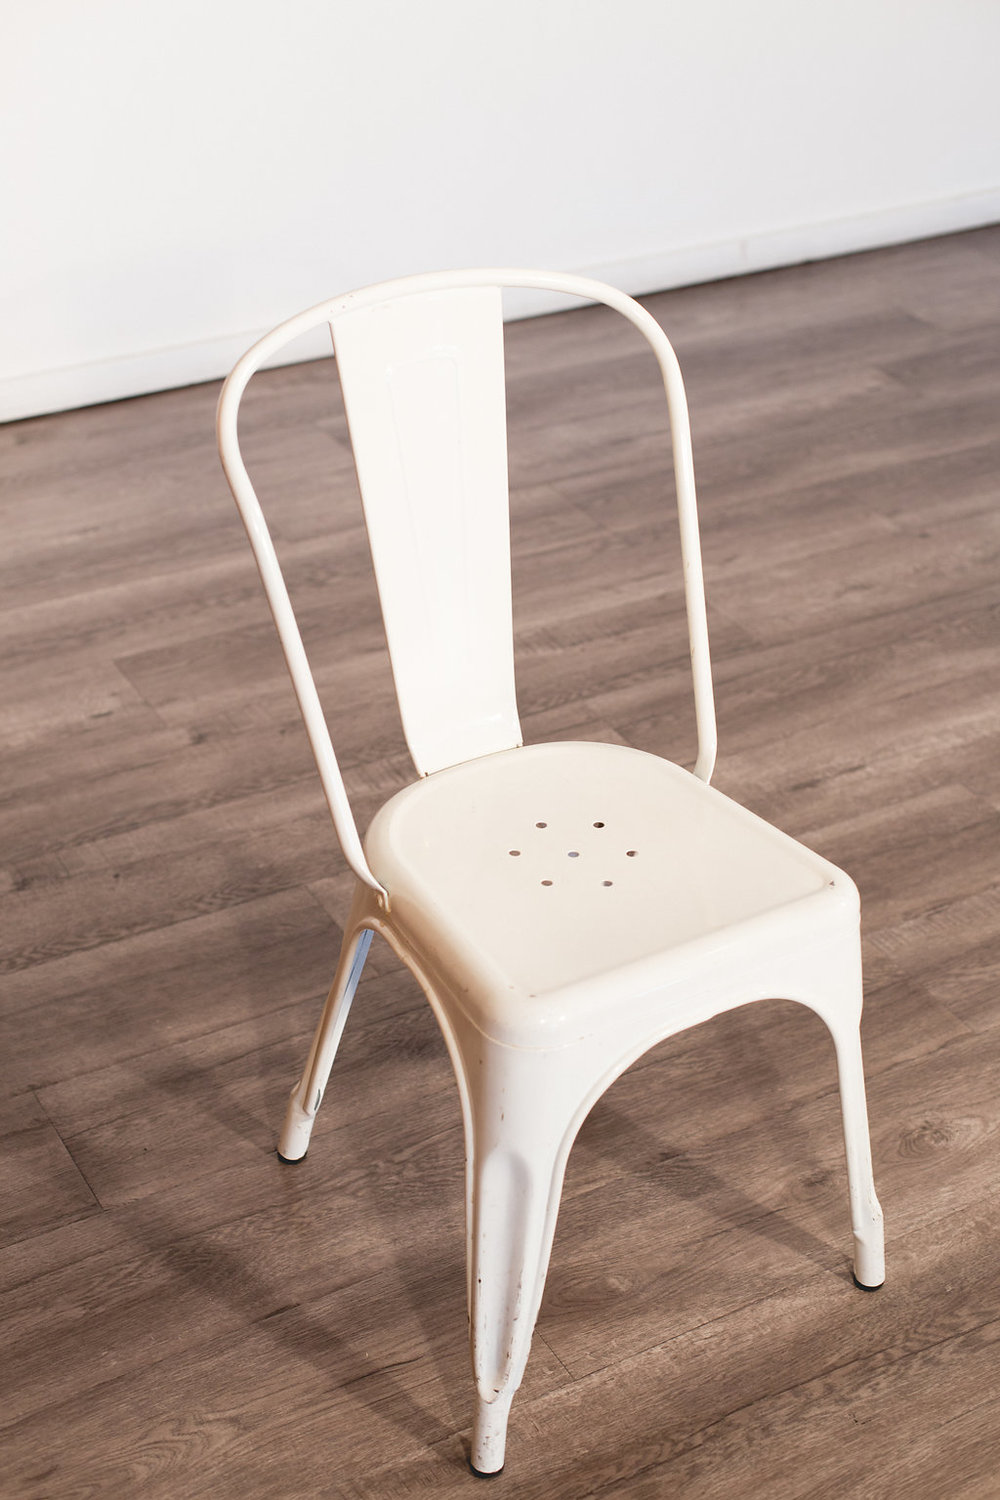 White Galvanized Steel Bistro Chair Quantity: 2